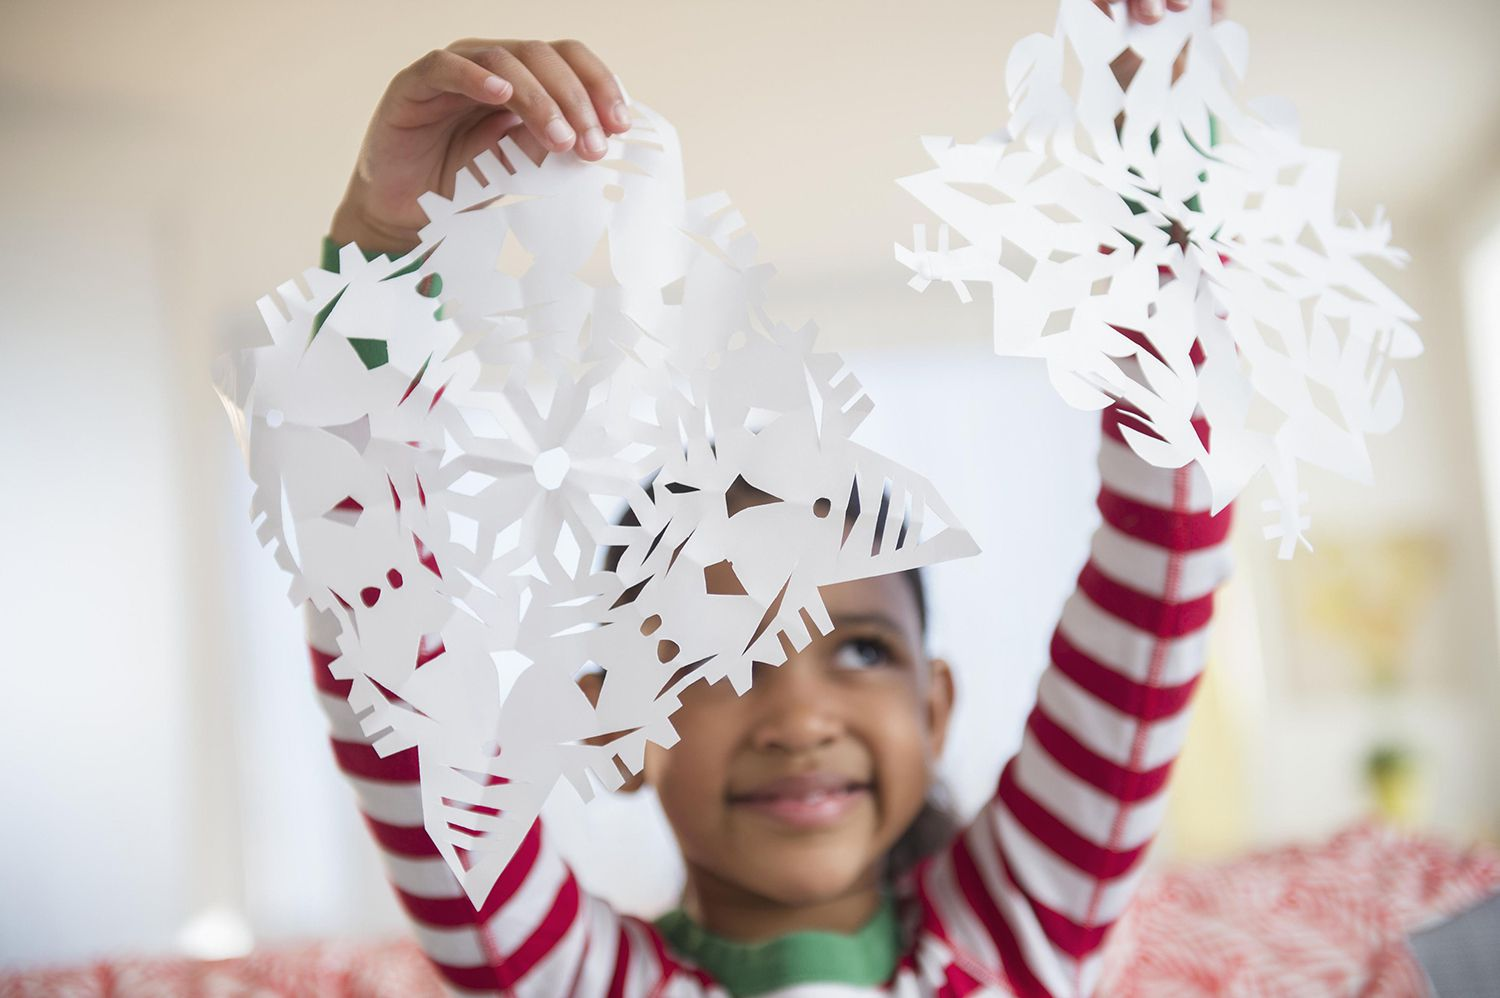 Girl Holding Paper Snowflakes